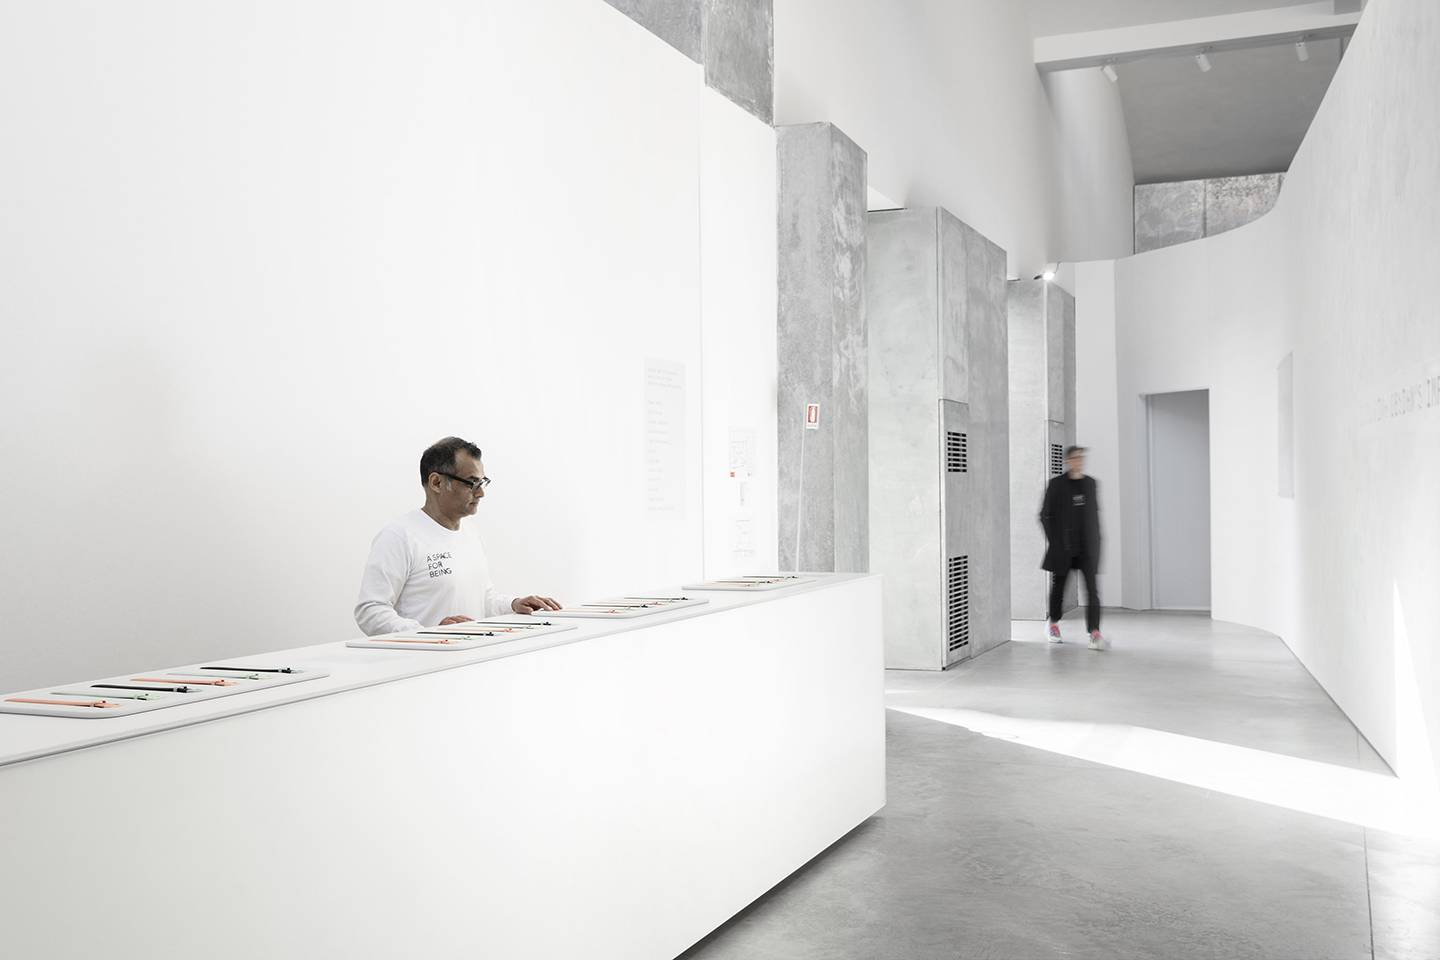 Entrance of the exhibit is stark white and unadorned